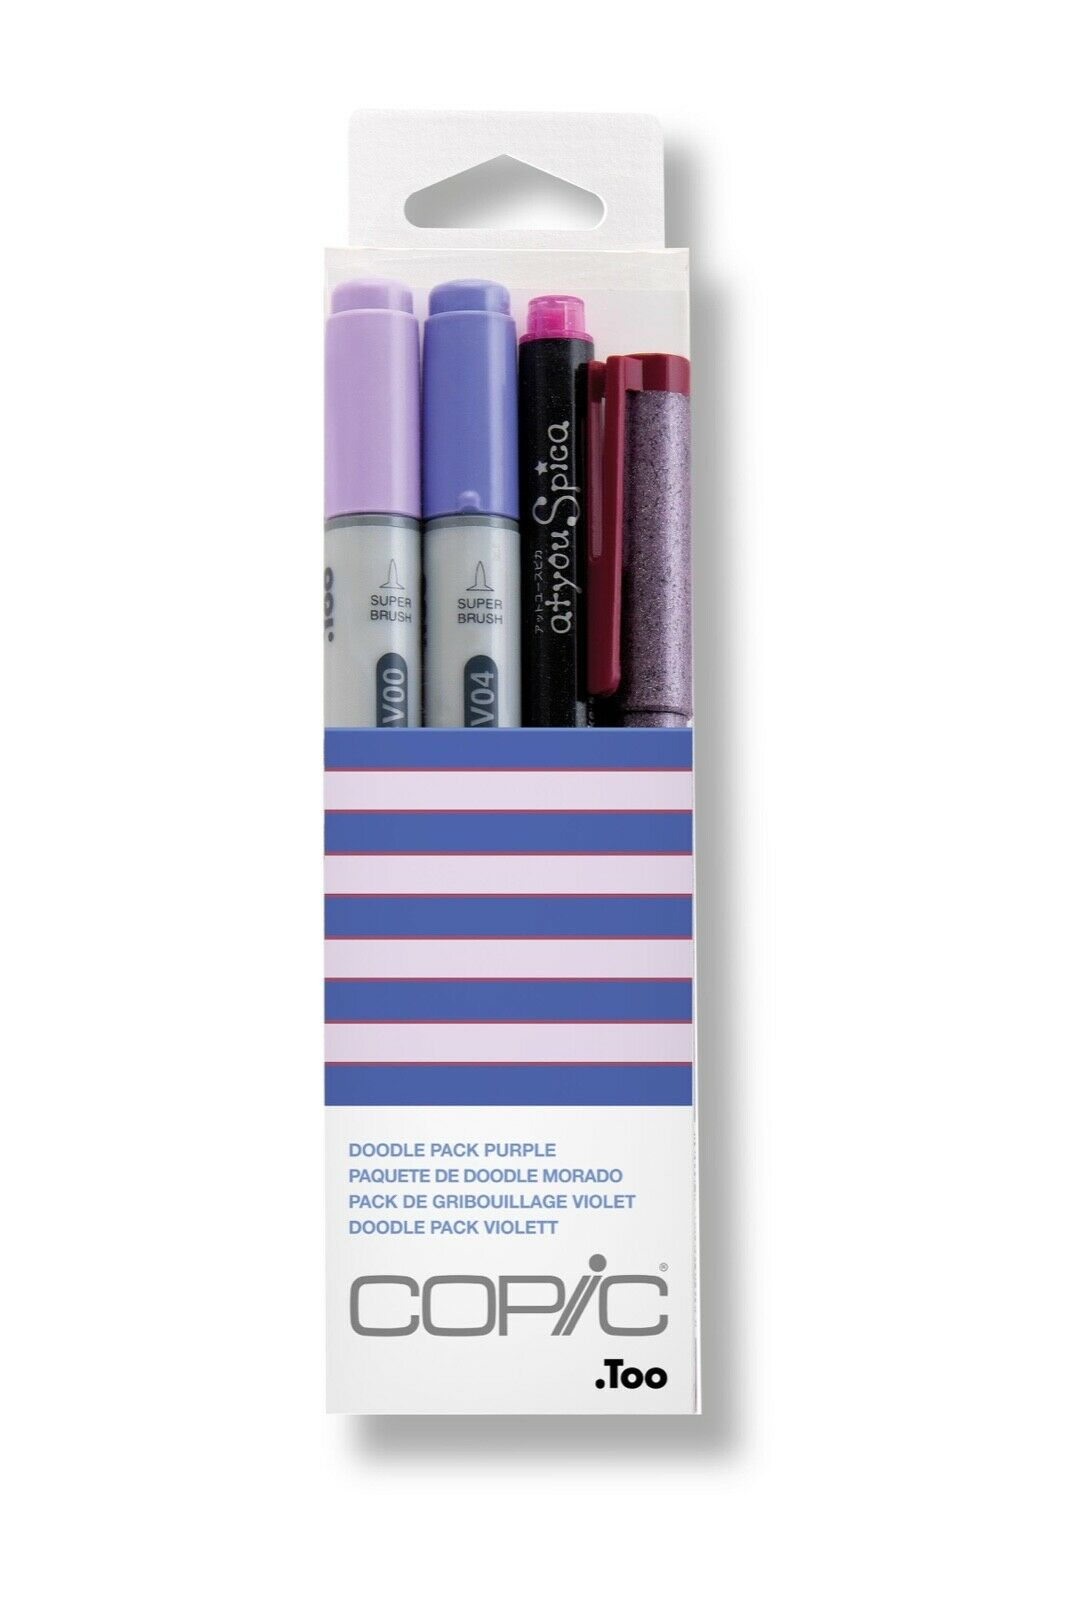 Copic Doodle Packs Purple Turquoise Red Yellow Brown Blue Pink Green